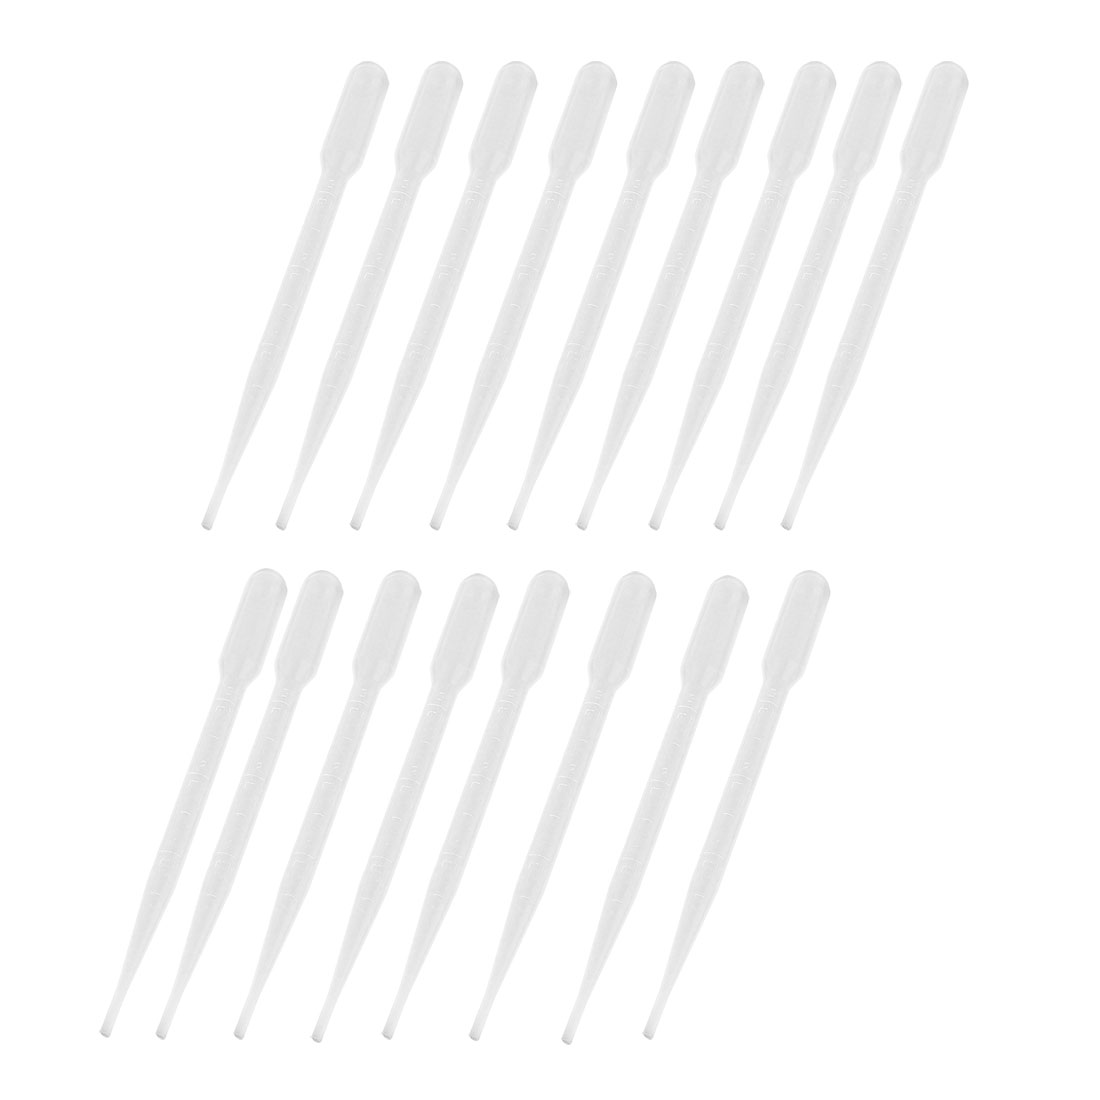 "15 Pcs 3ML Capacity Lab Transparent Pipettes Droppers 6.2"" Length"